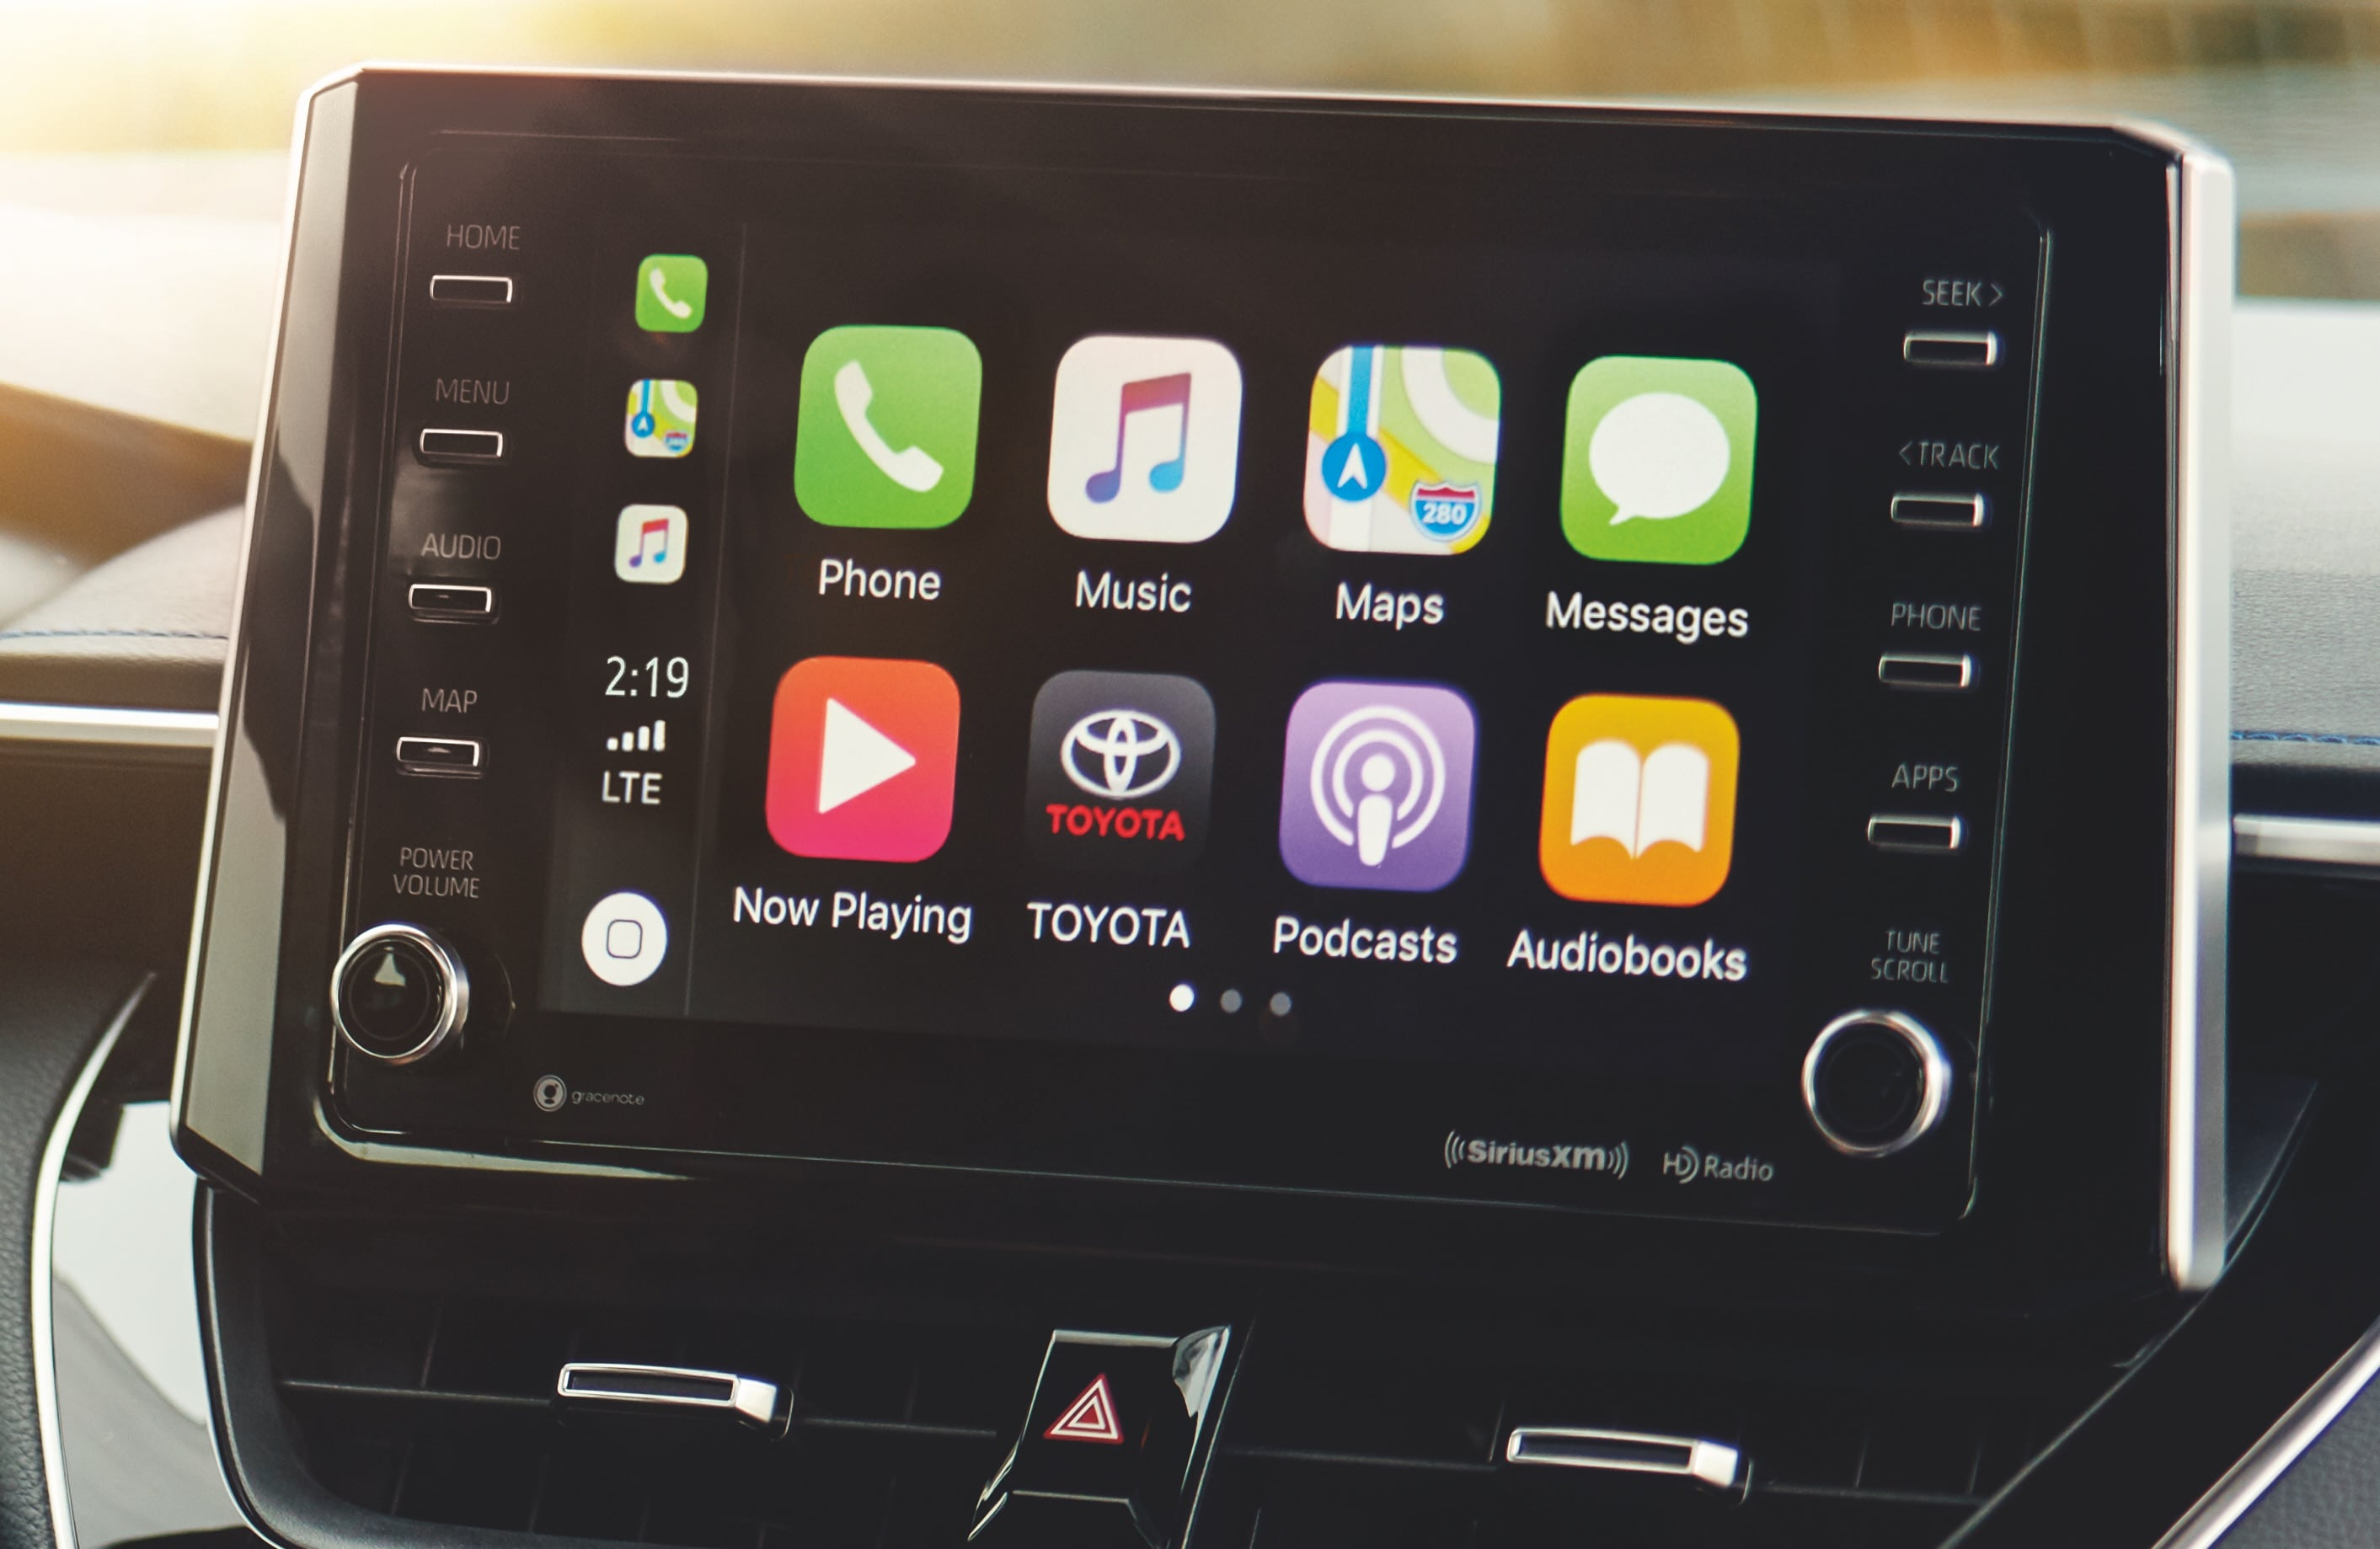 2020 Corolla Apple CarPlay